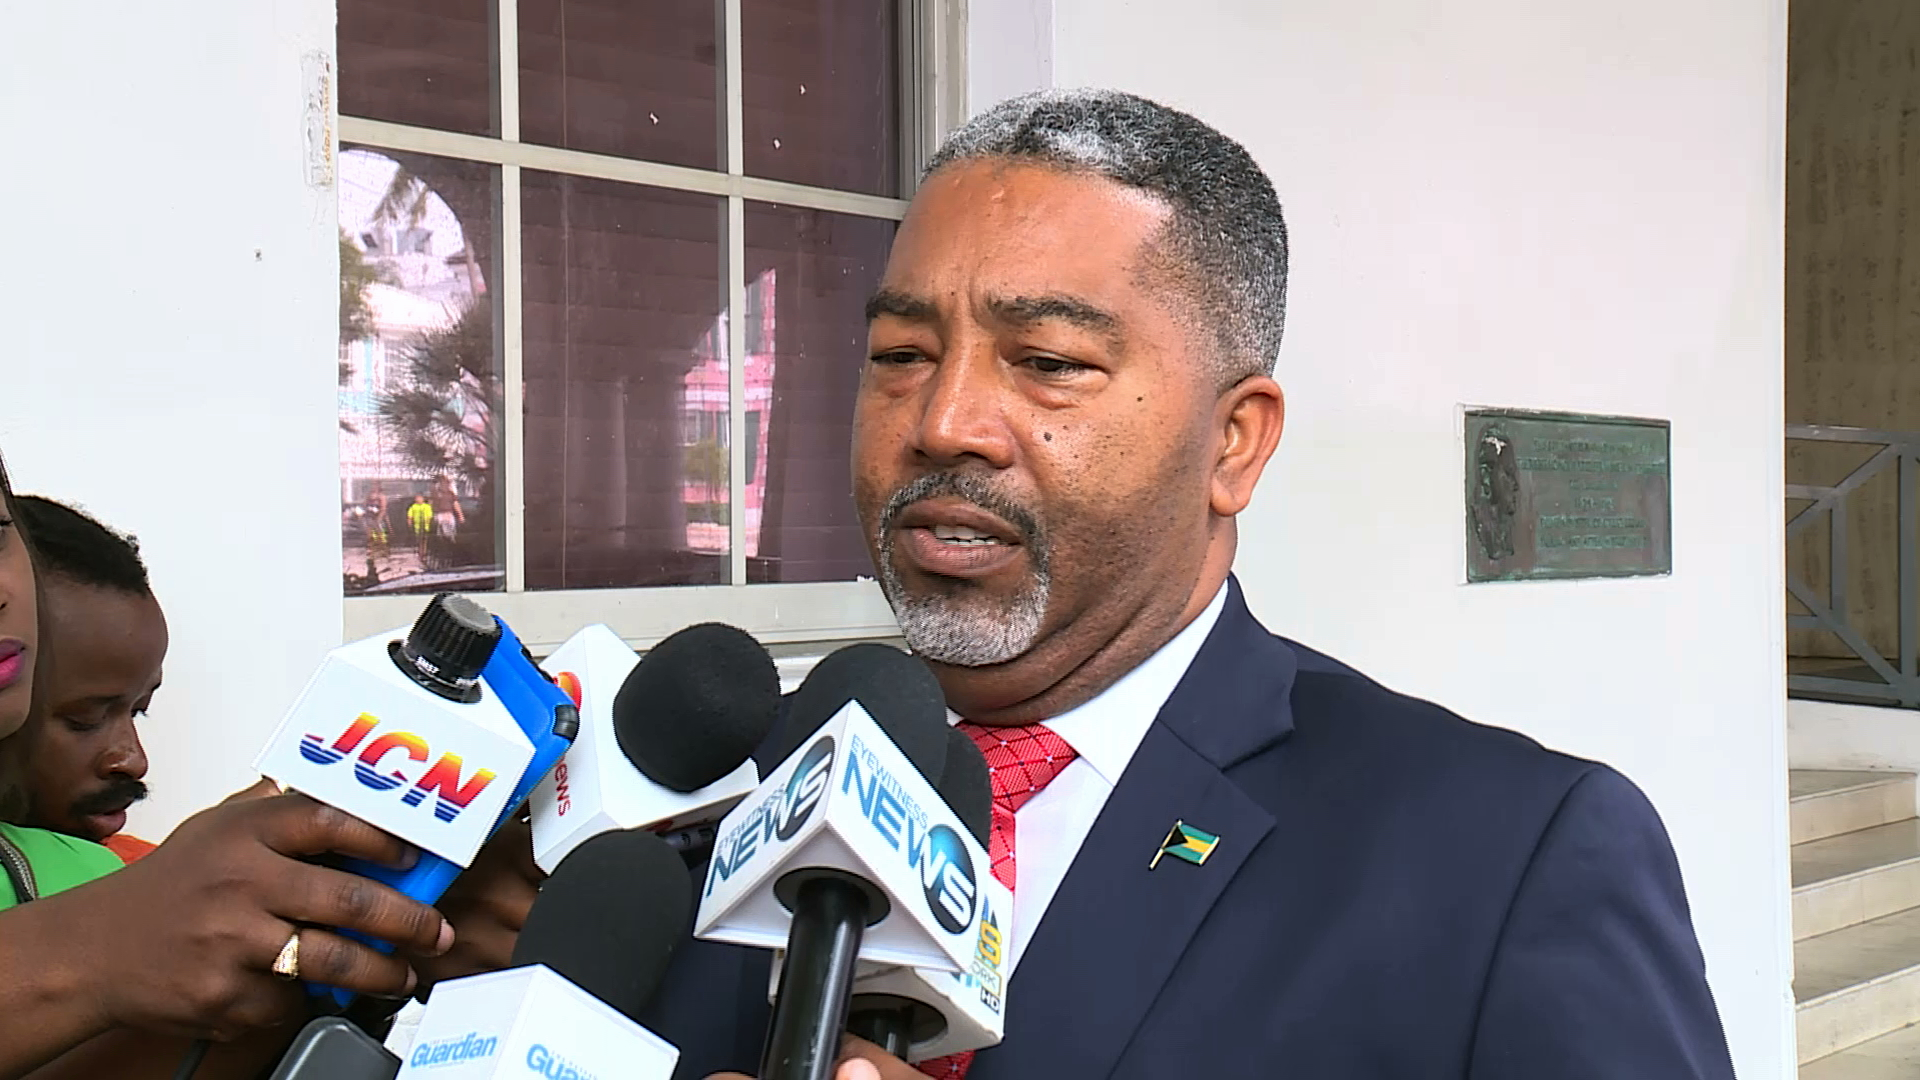 Govt. researching unified busing system